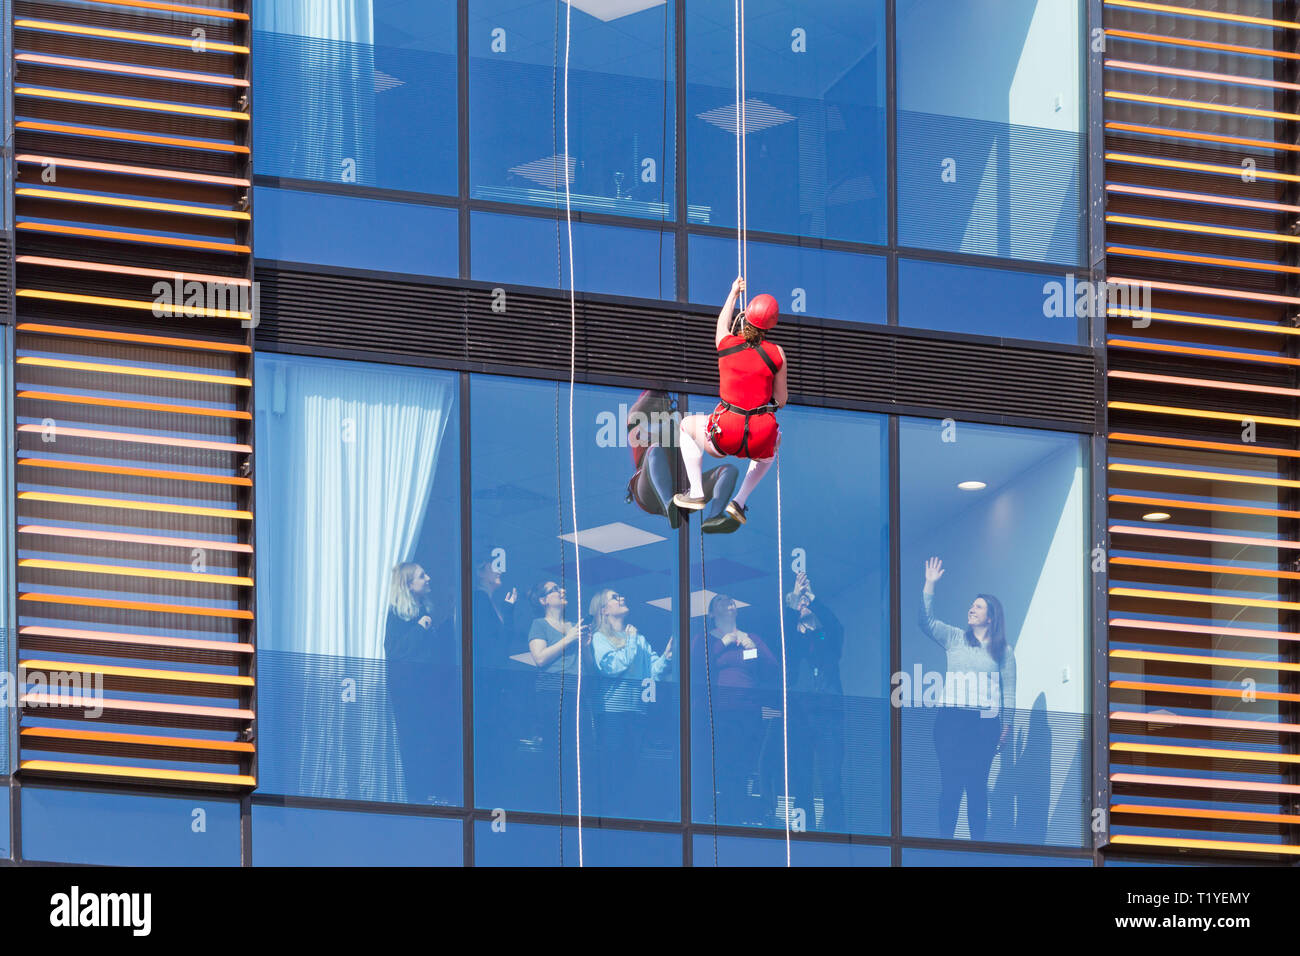 Bournemouth, Dorset, UK. 29th Mar, 2019. Staff working for telecommunications provider 4Com abseil down their new office building at One Lansdowne Plaza in Bournemouth which is 100ft high. They are raising funds for Hope Housing and Hope AOK Rucksack Appeal who provide support to homeless in Bournemouth. A lovely warm sunny day for the descent! Credit: Carolyn Jenkins/Alamy Live News - Stock Image